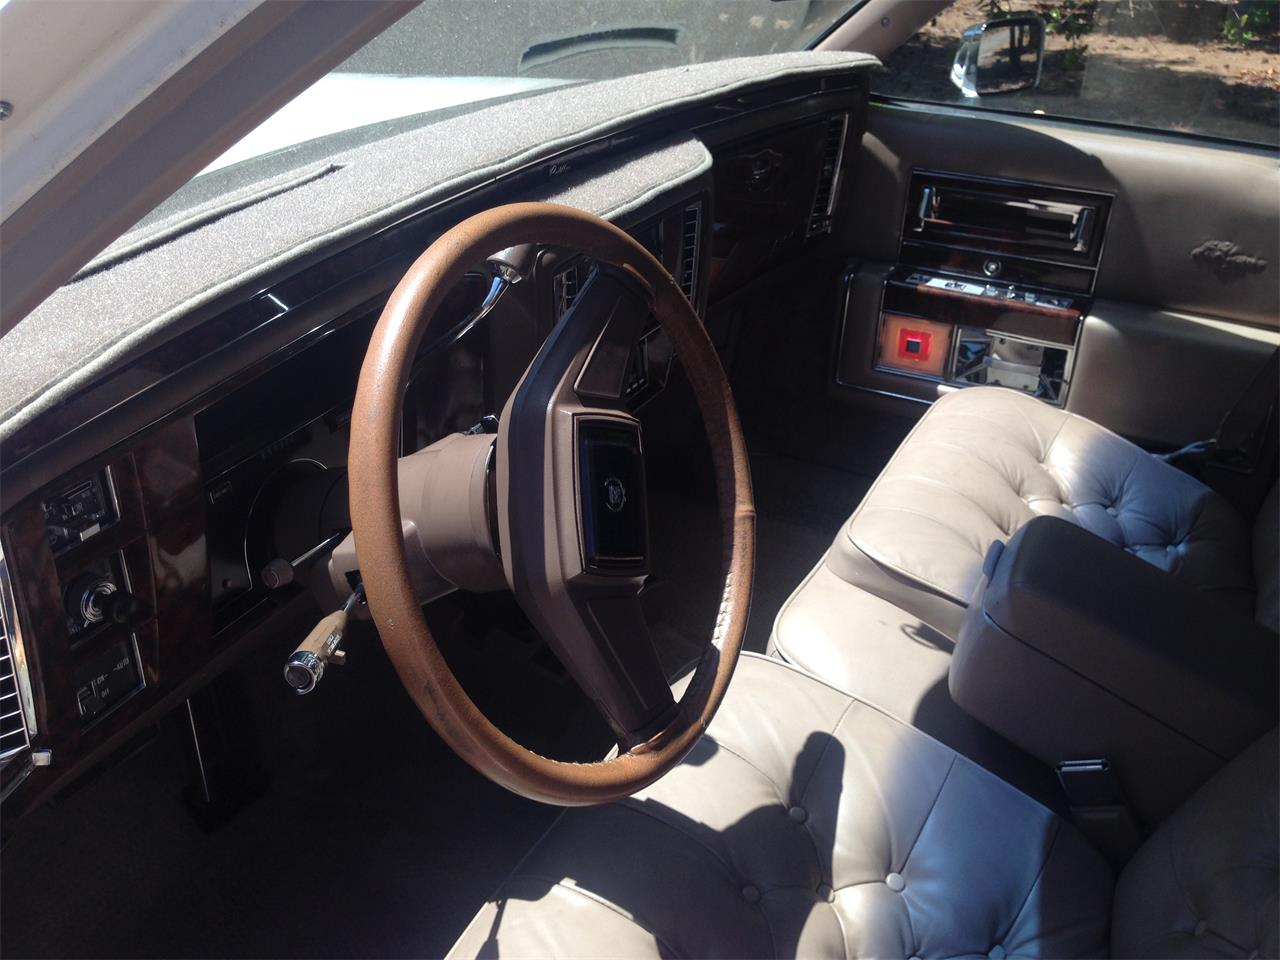 Large Picture of 1990 Cadillac Brougham d'Elegance located in California Offered by a Private Seller - LR7K